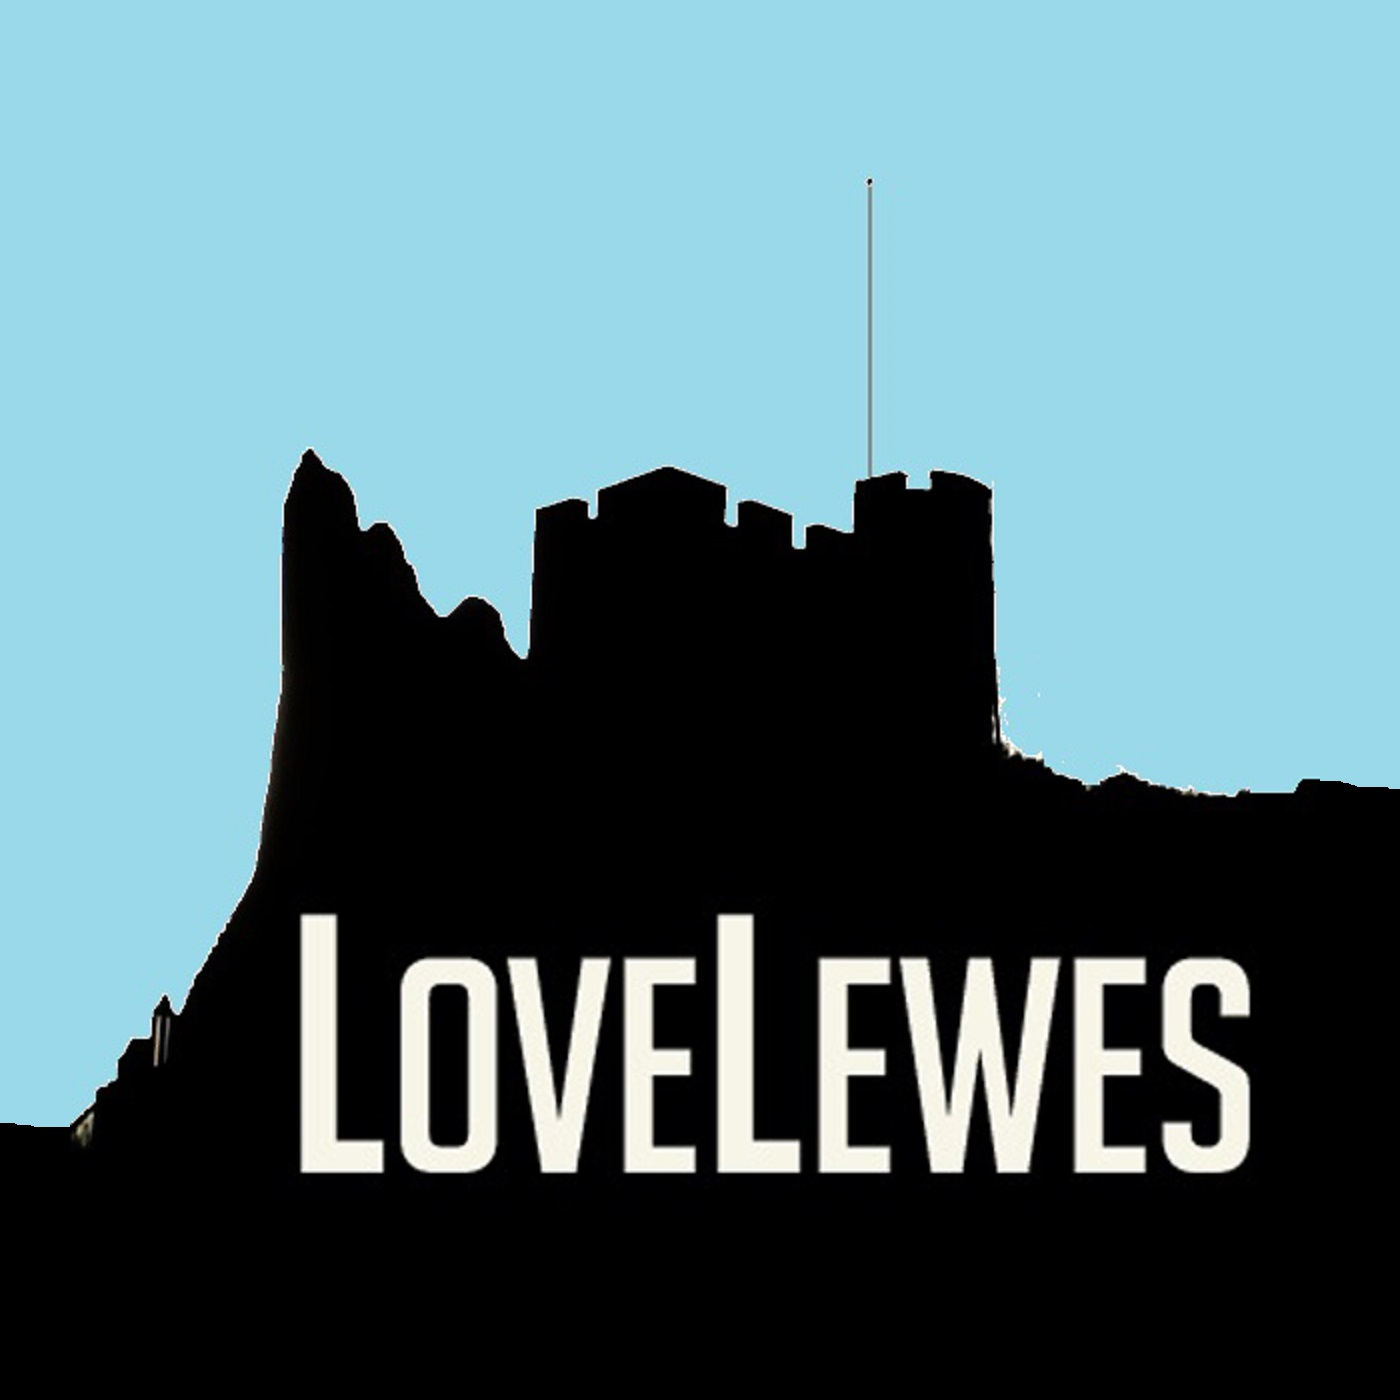 podcast – Love Lewes